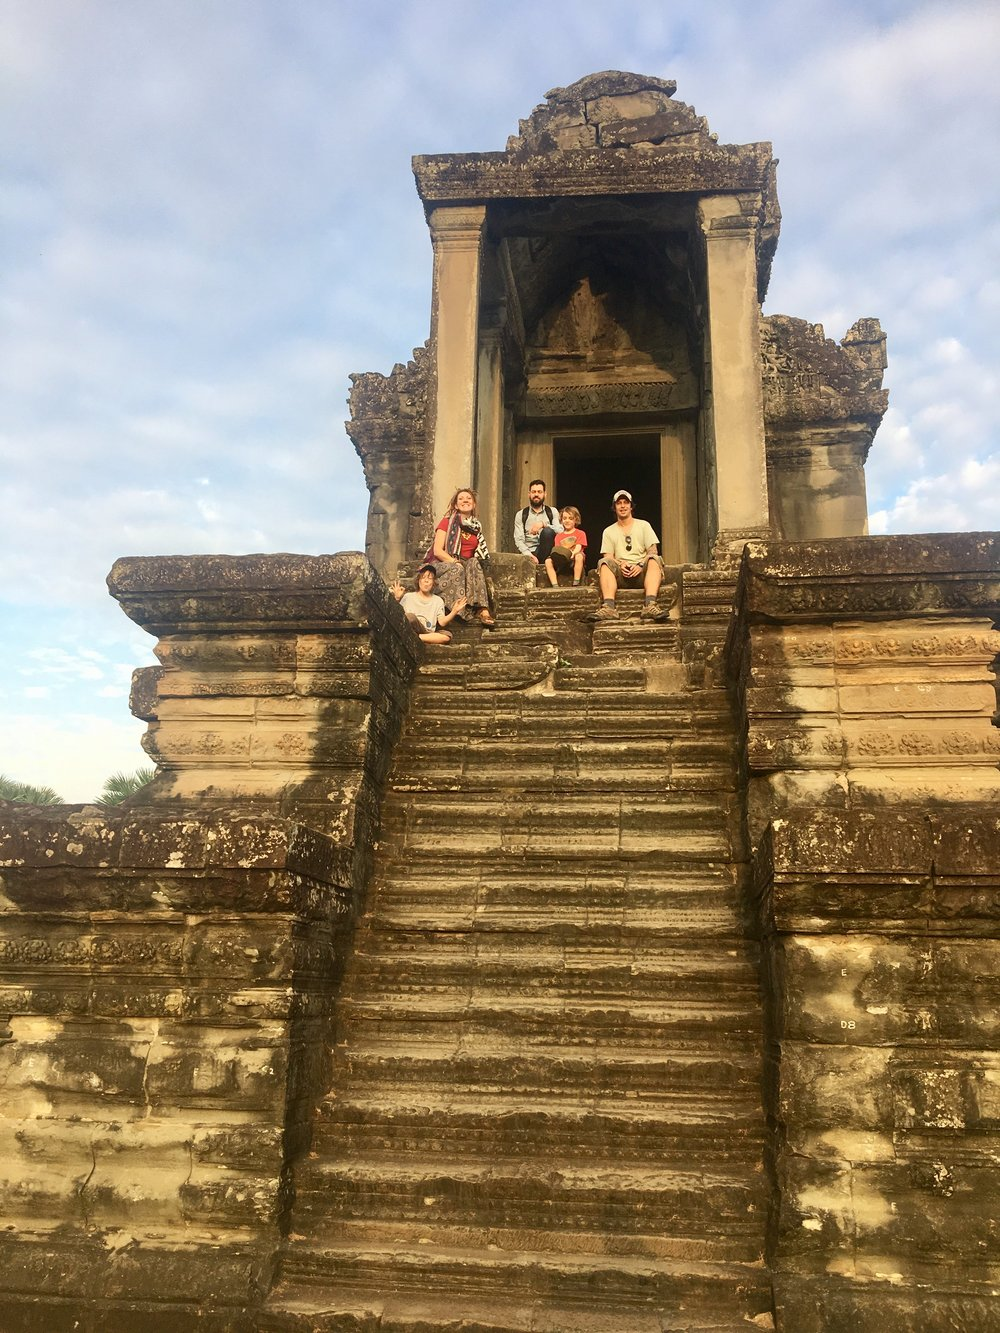 Up the steep steps at Angkor Wat.